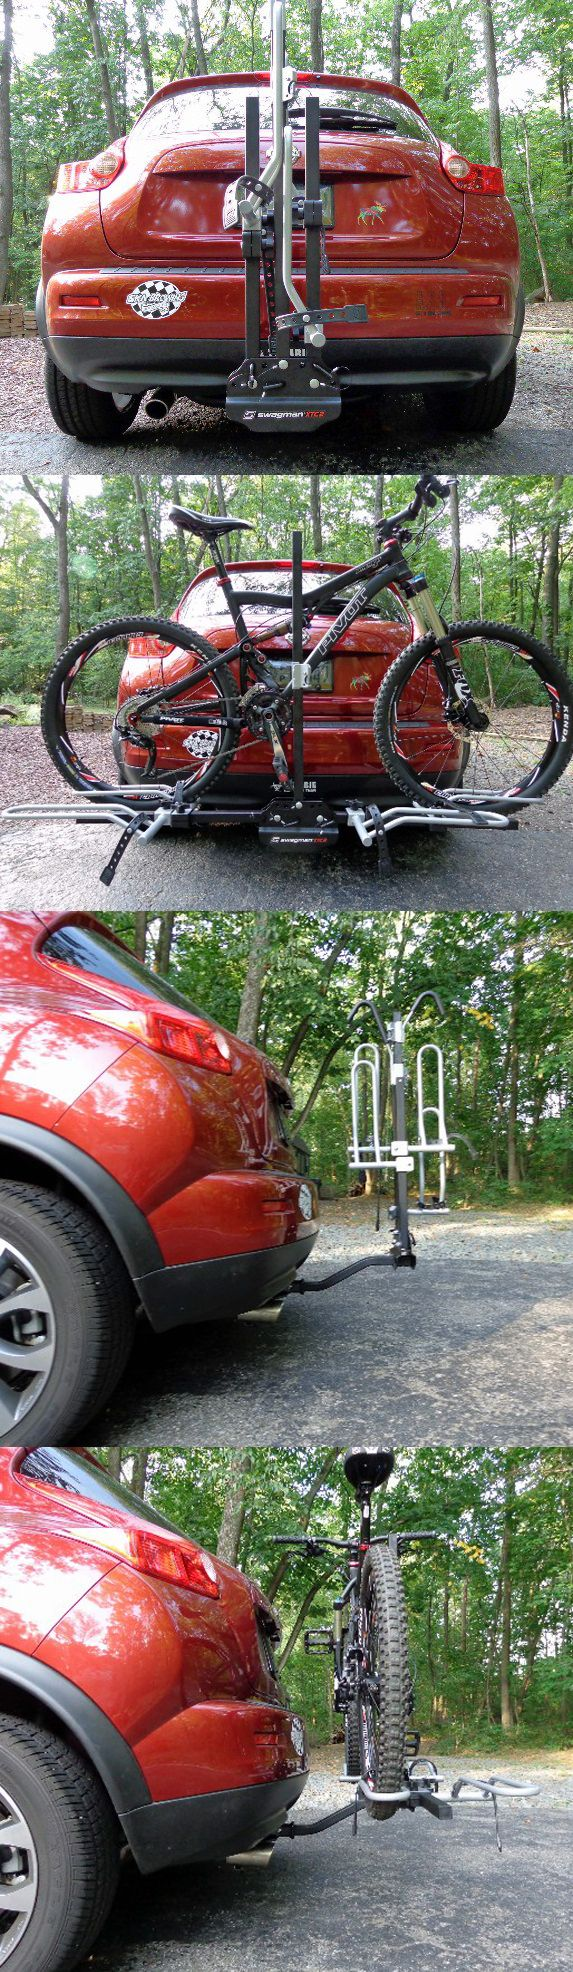 The Swagman XTC-2 2-Bike Rack Platform Rack - one of the most popular out there. Watch installation videos, read reviews and see why this bike rack is favoured among users. Happy cycling!   http://www.etrailer.com/Hitch-Bike-Racks/Swagman/S64670.html